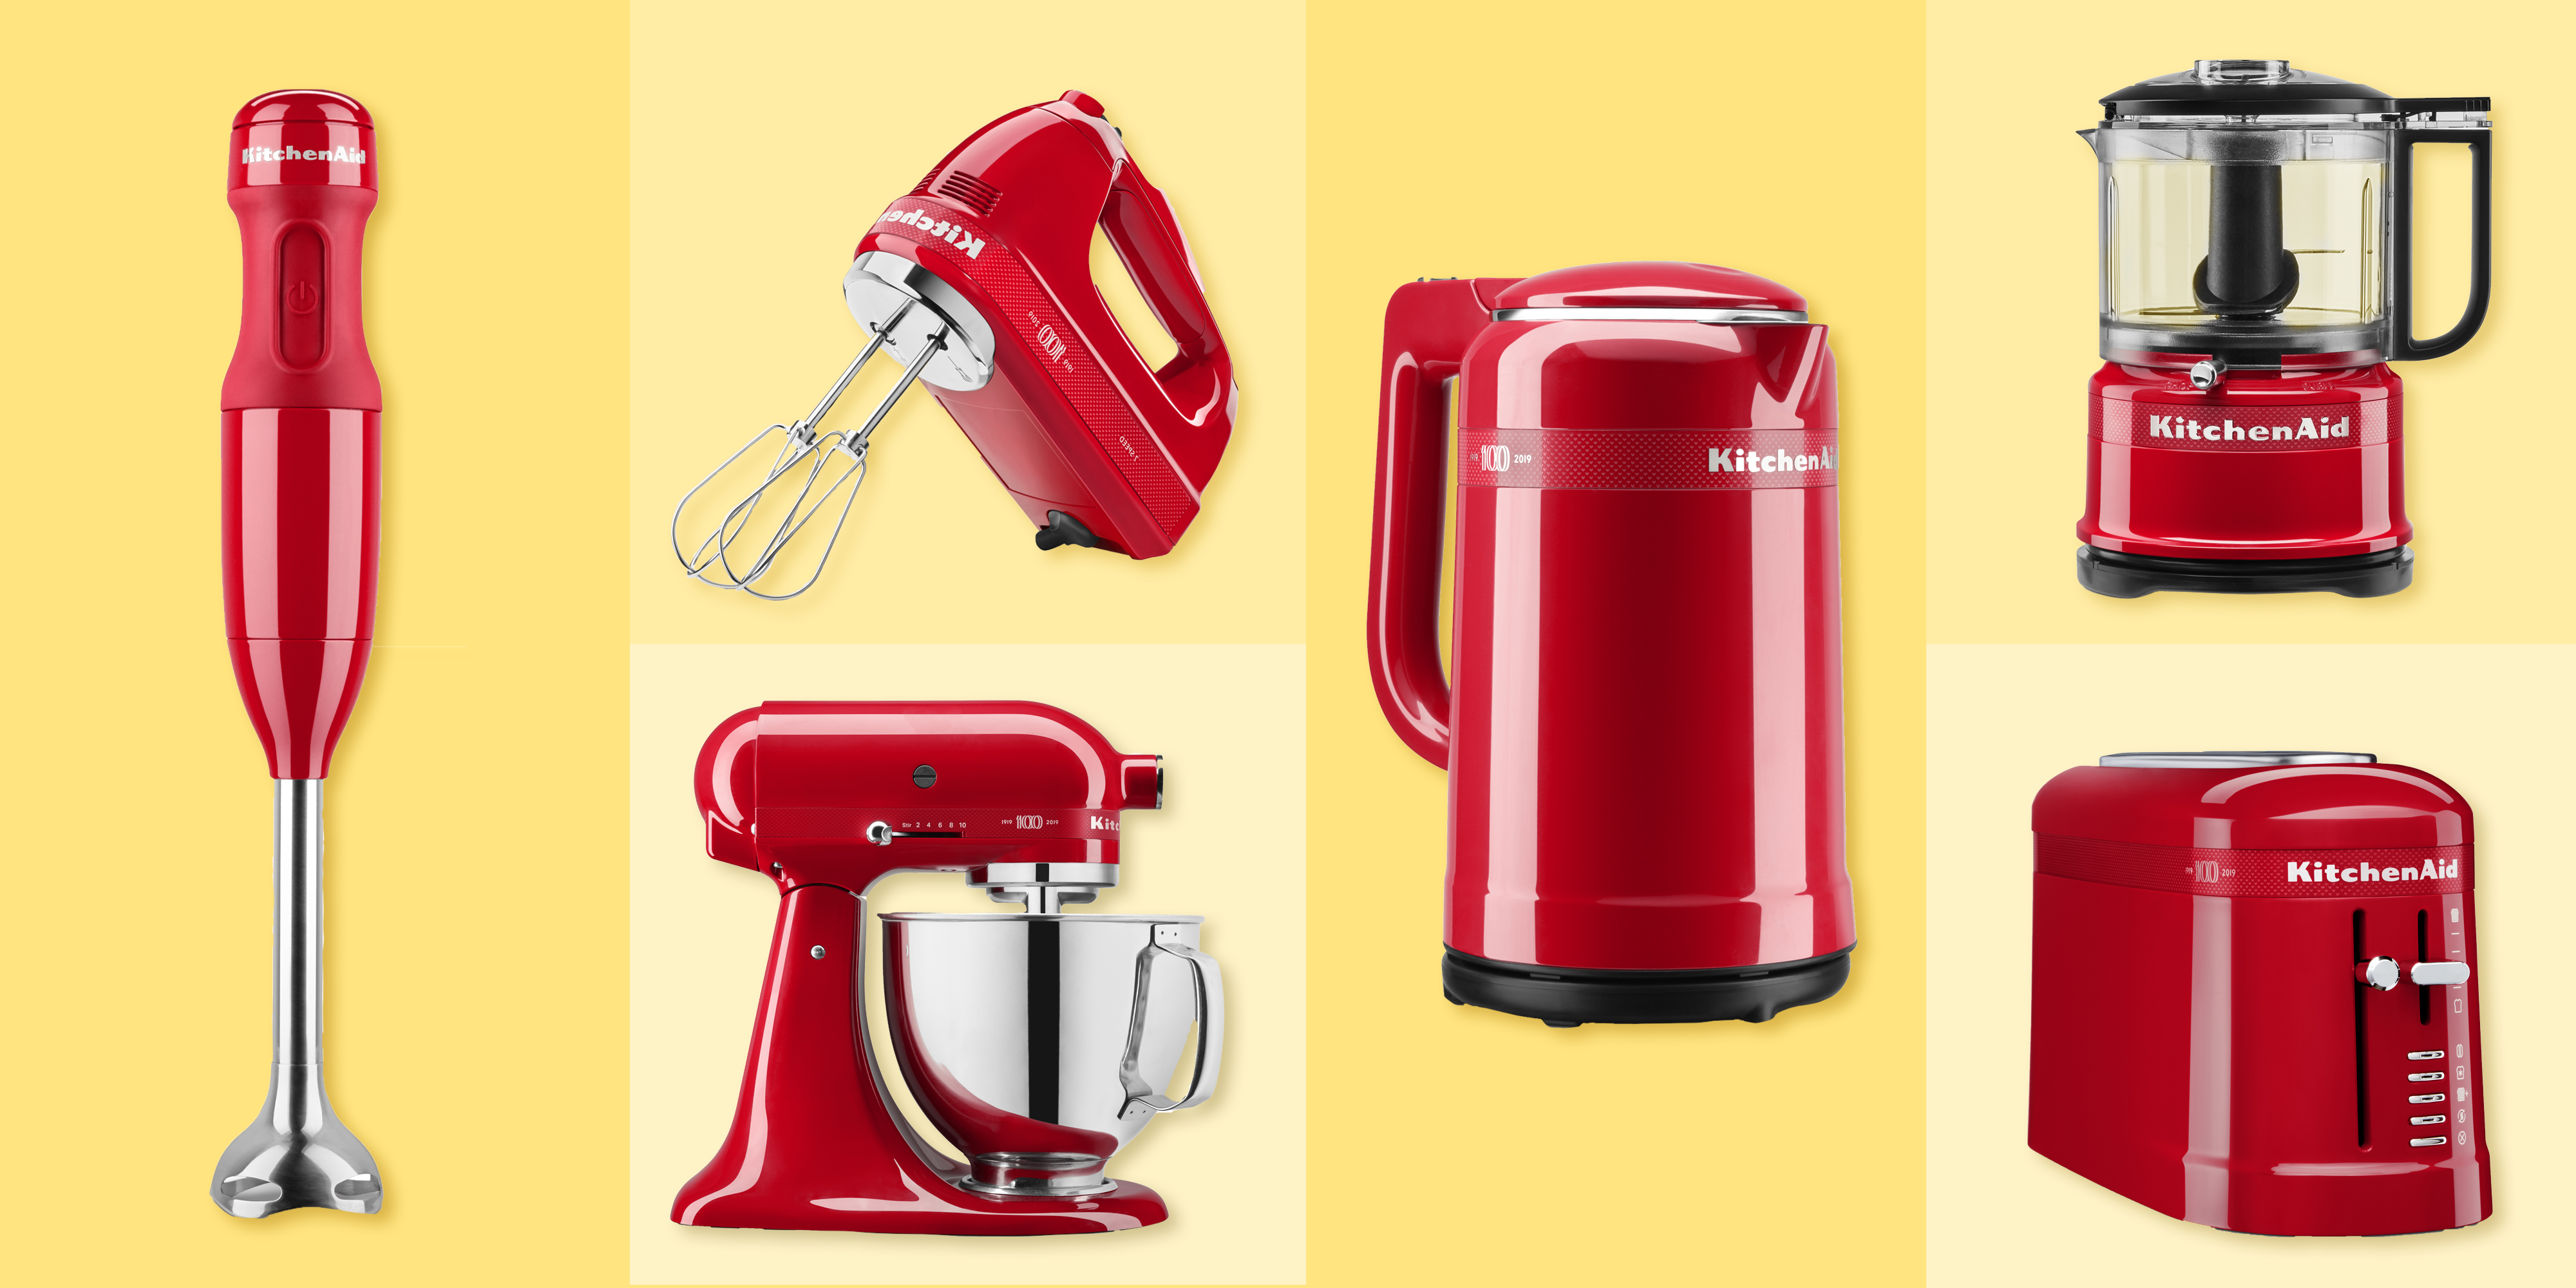 KitchenAid Just Dropped This Gorgeous 'Queen of Hearts' Collection